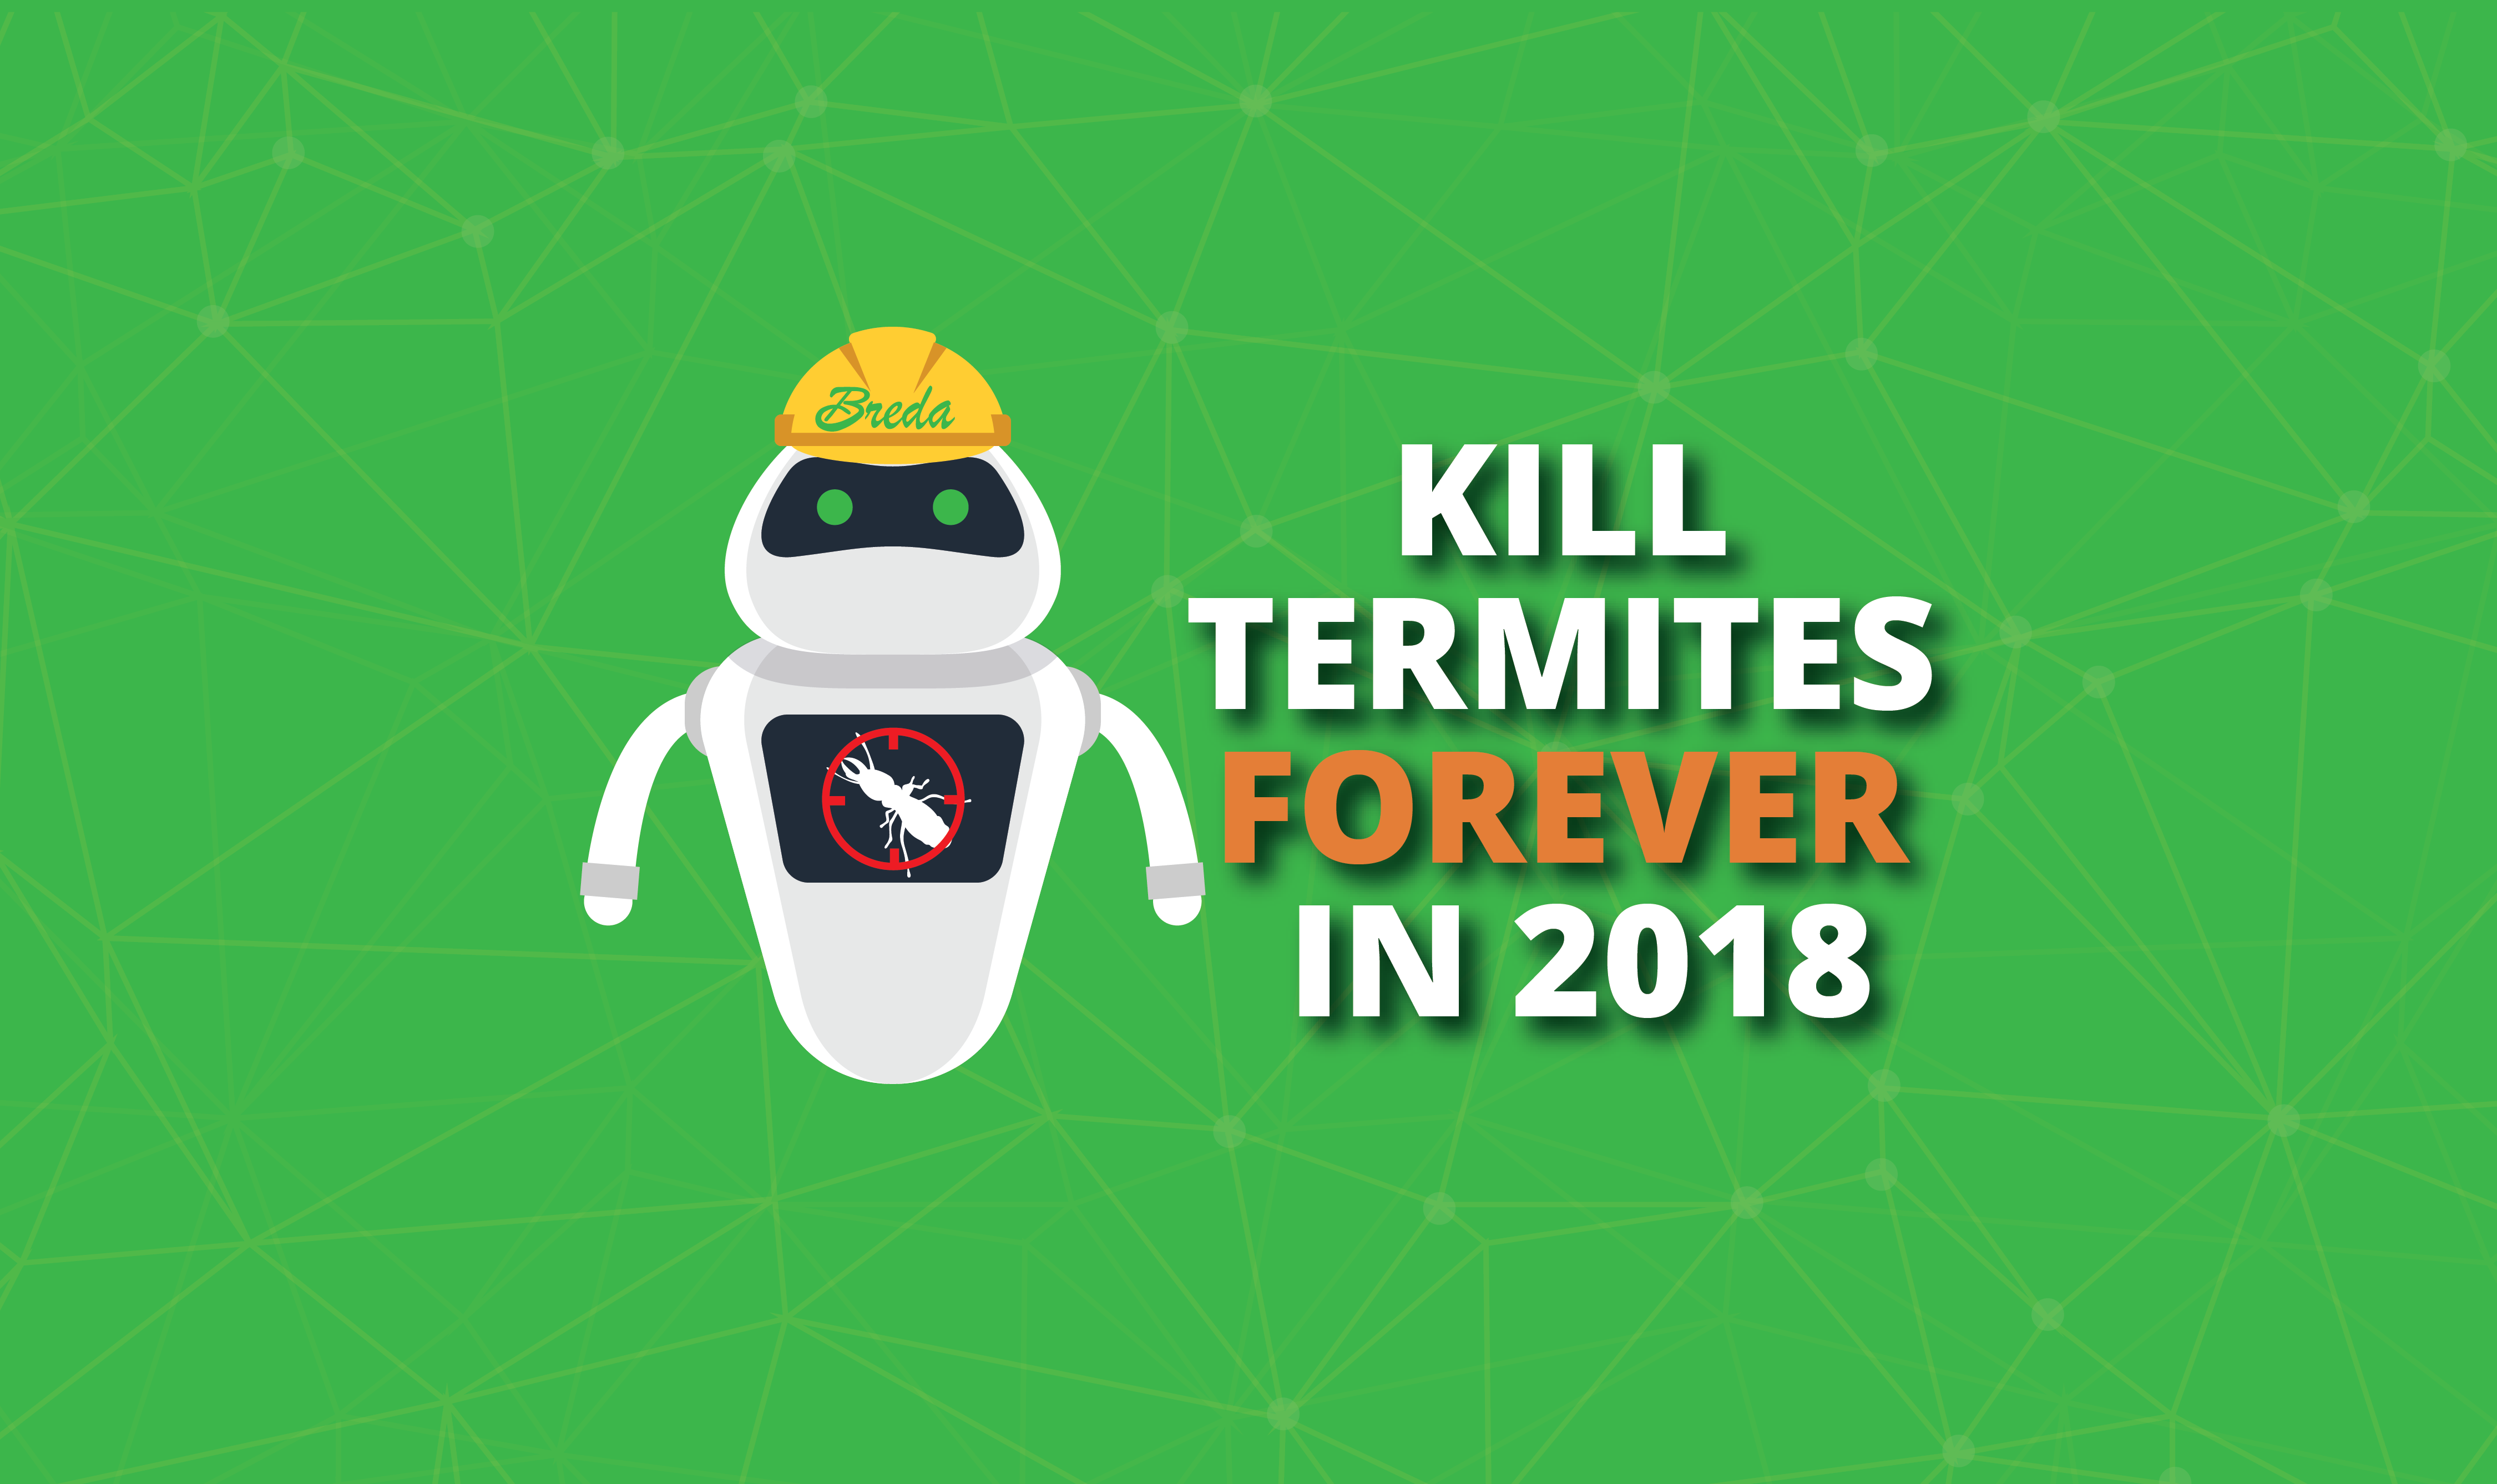 How to Kill Termites Forever in 2018 | Breda Pest Management